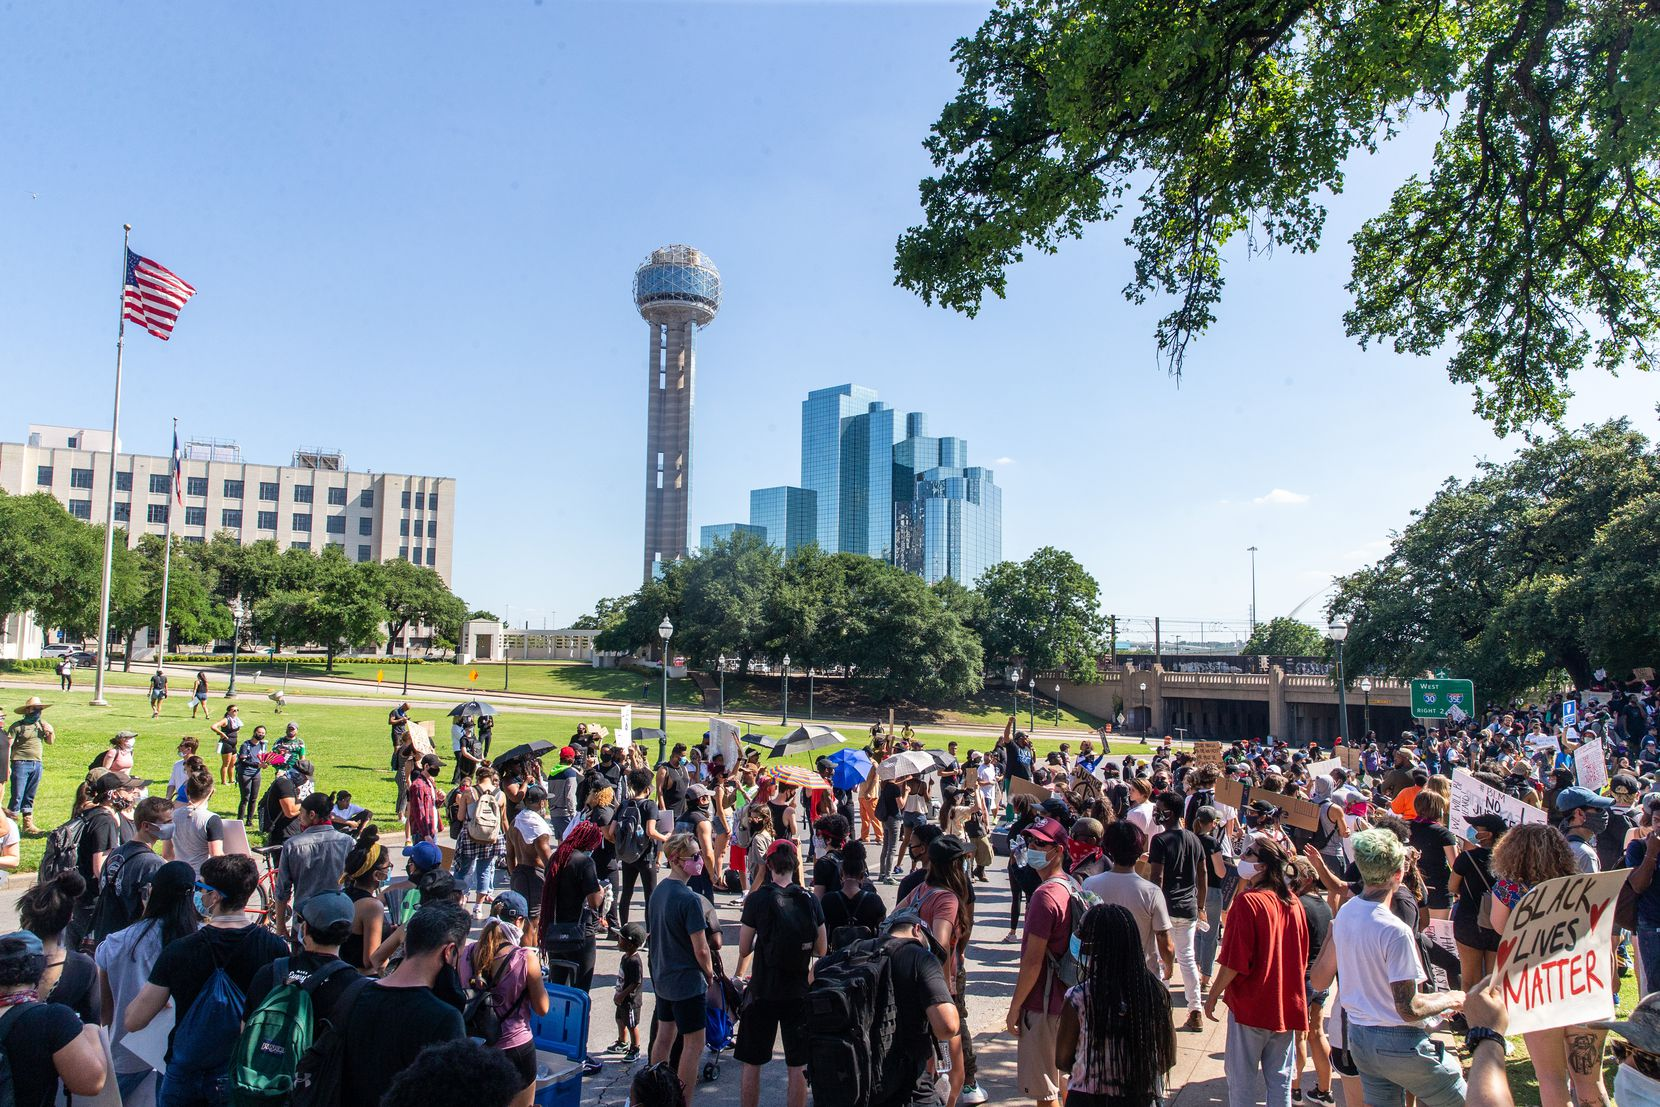 Protesters assemble at the grassy knoll on June 3 during a demonstration denouncing police brutality and systemic racism. The gathering was organized by Not My Son, a new organization in Dallas.